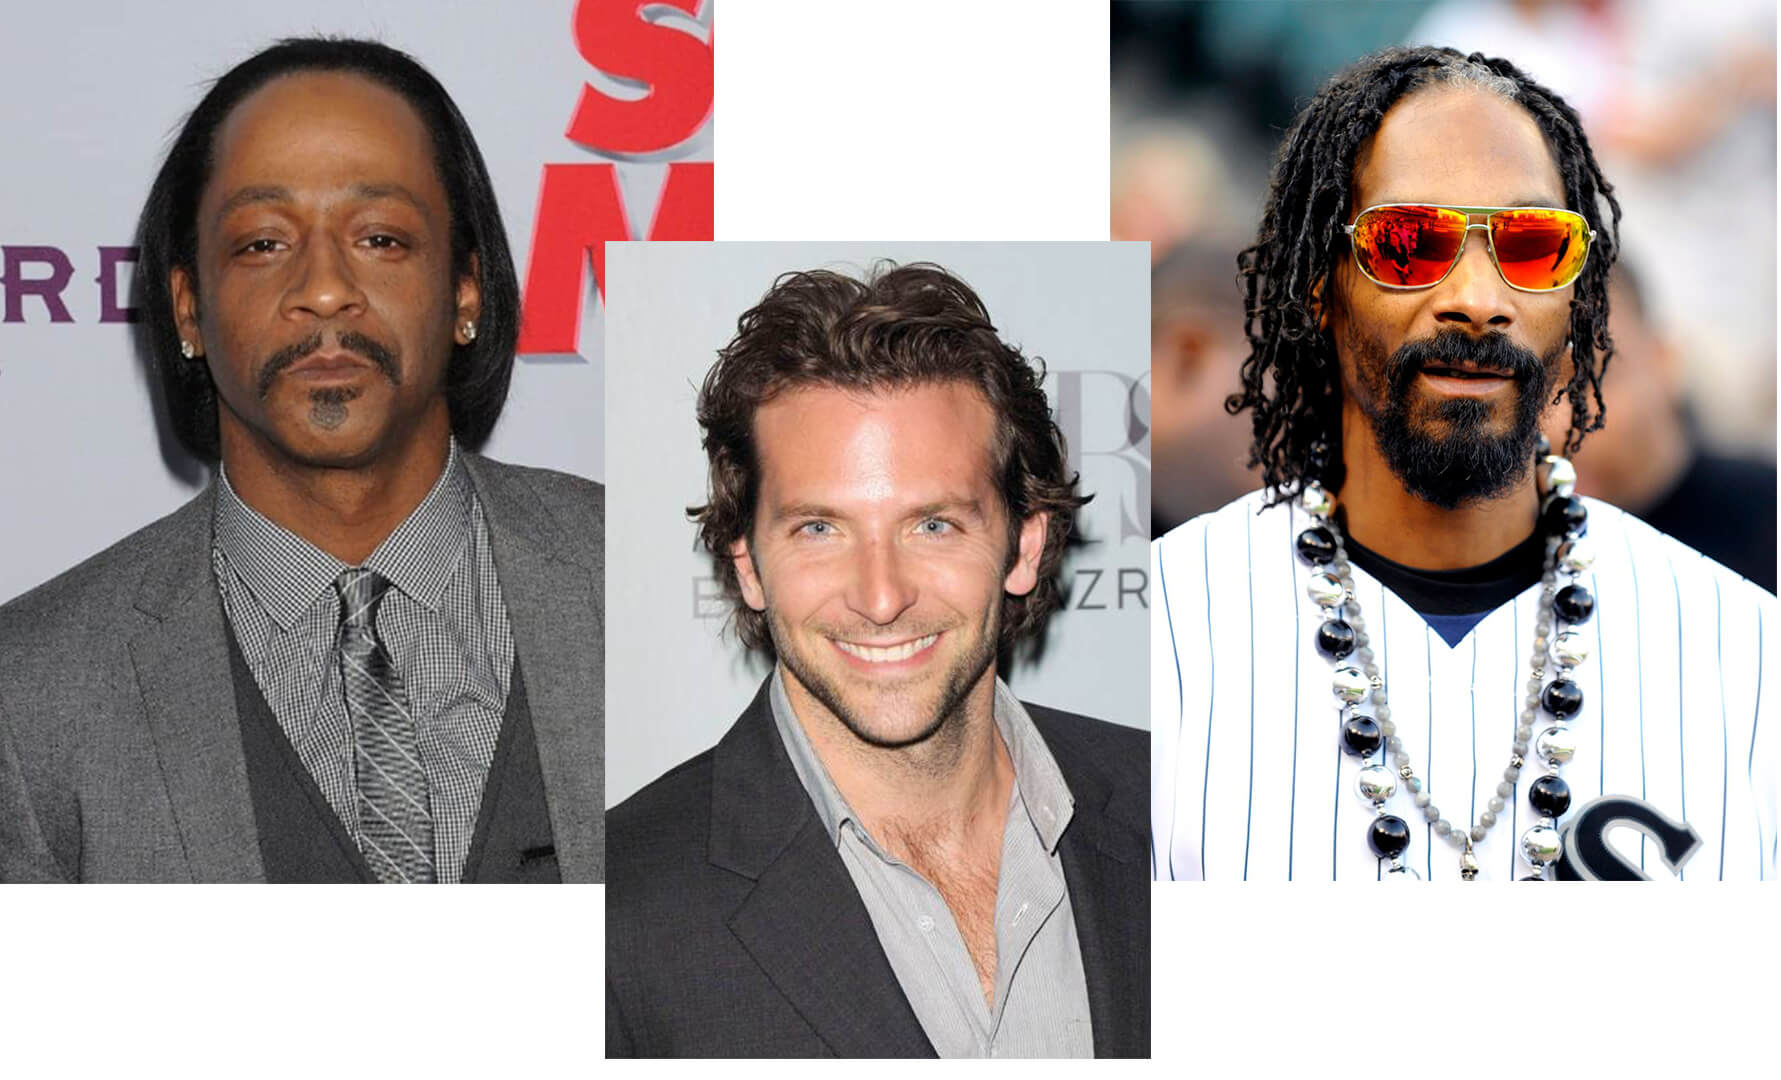 Celebs with long hair mature and receding hairline. Bradley cooper, snoop dog, kat williams